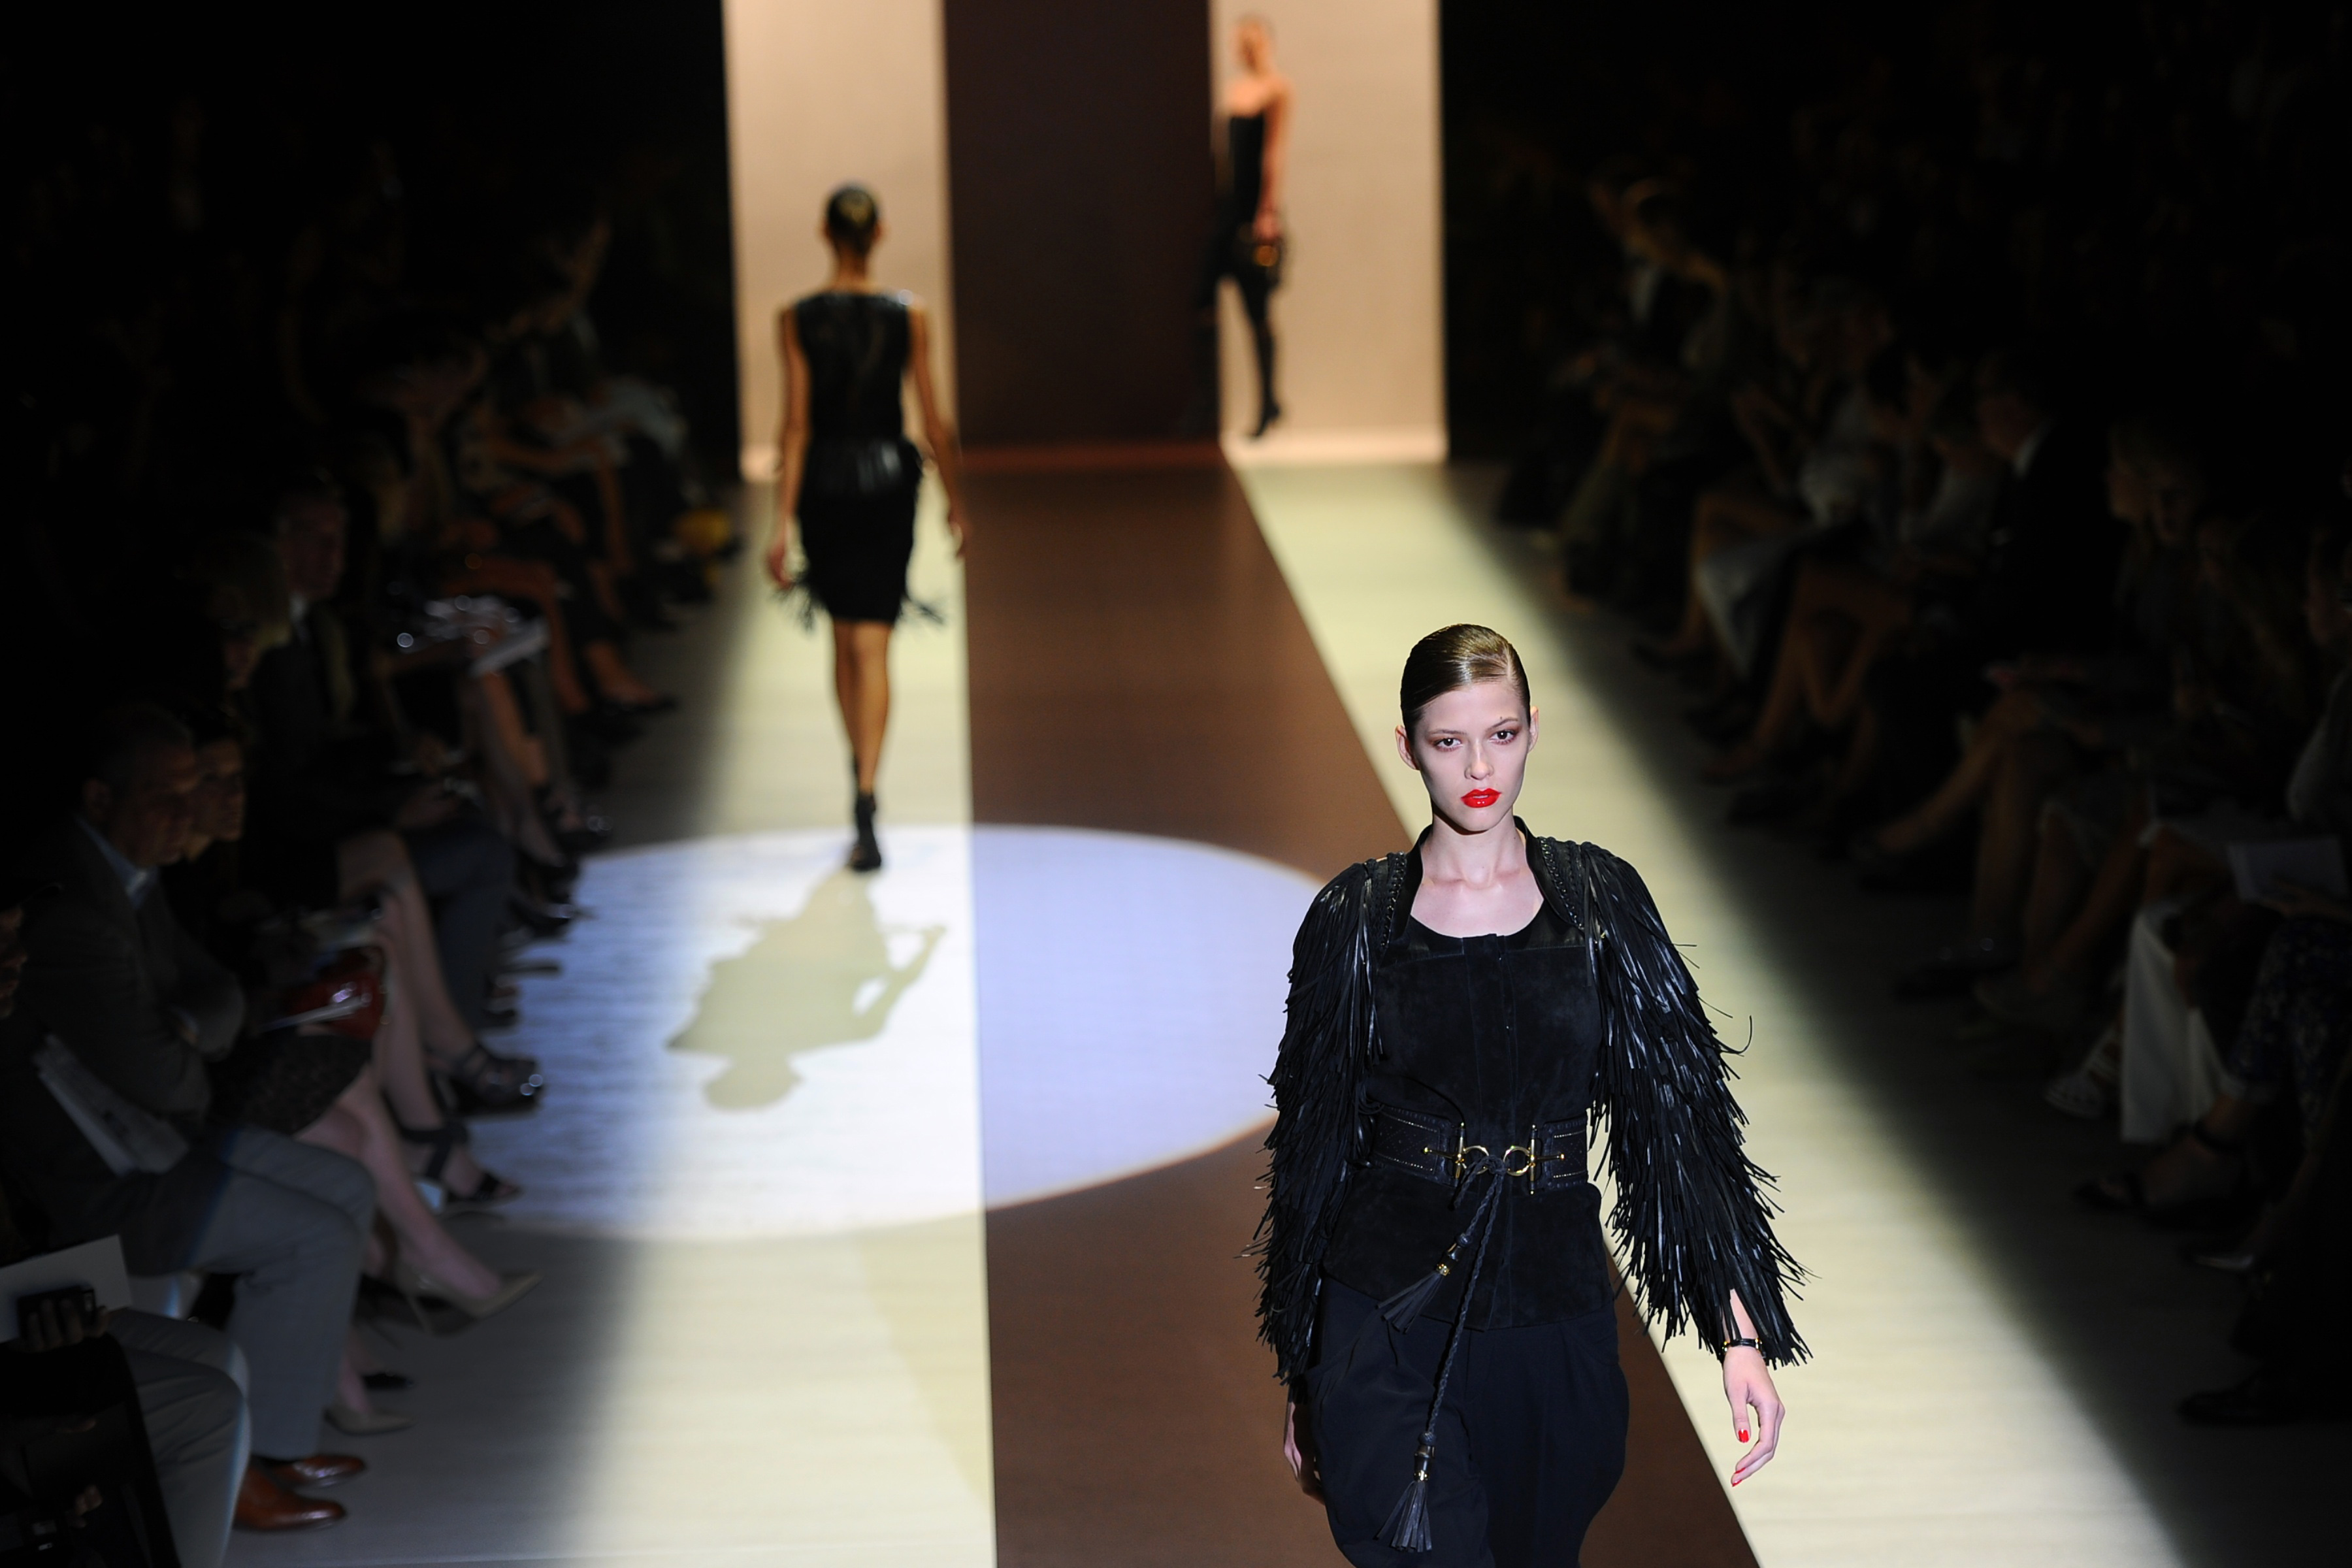 Italy S Biggest Fashion Designer To Extend Benefits To Same Sex Couples